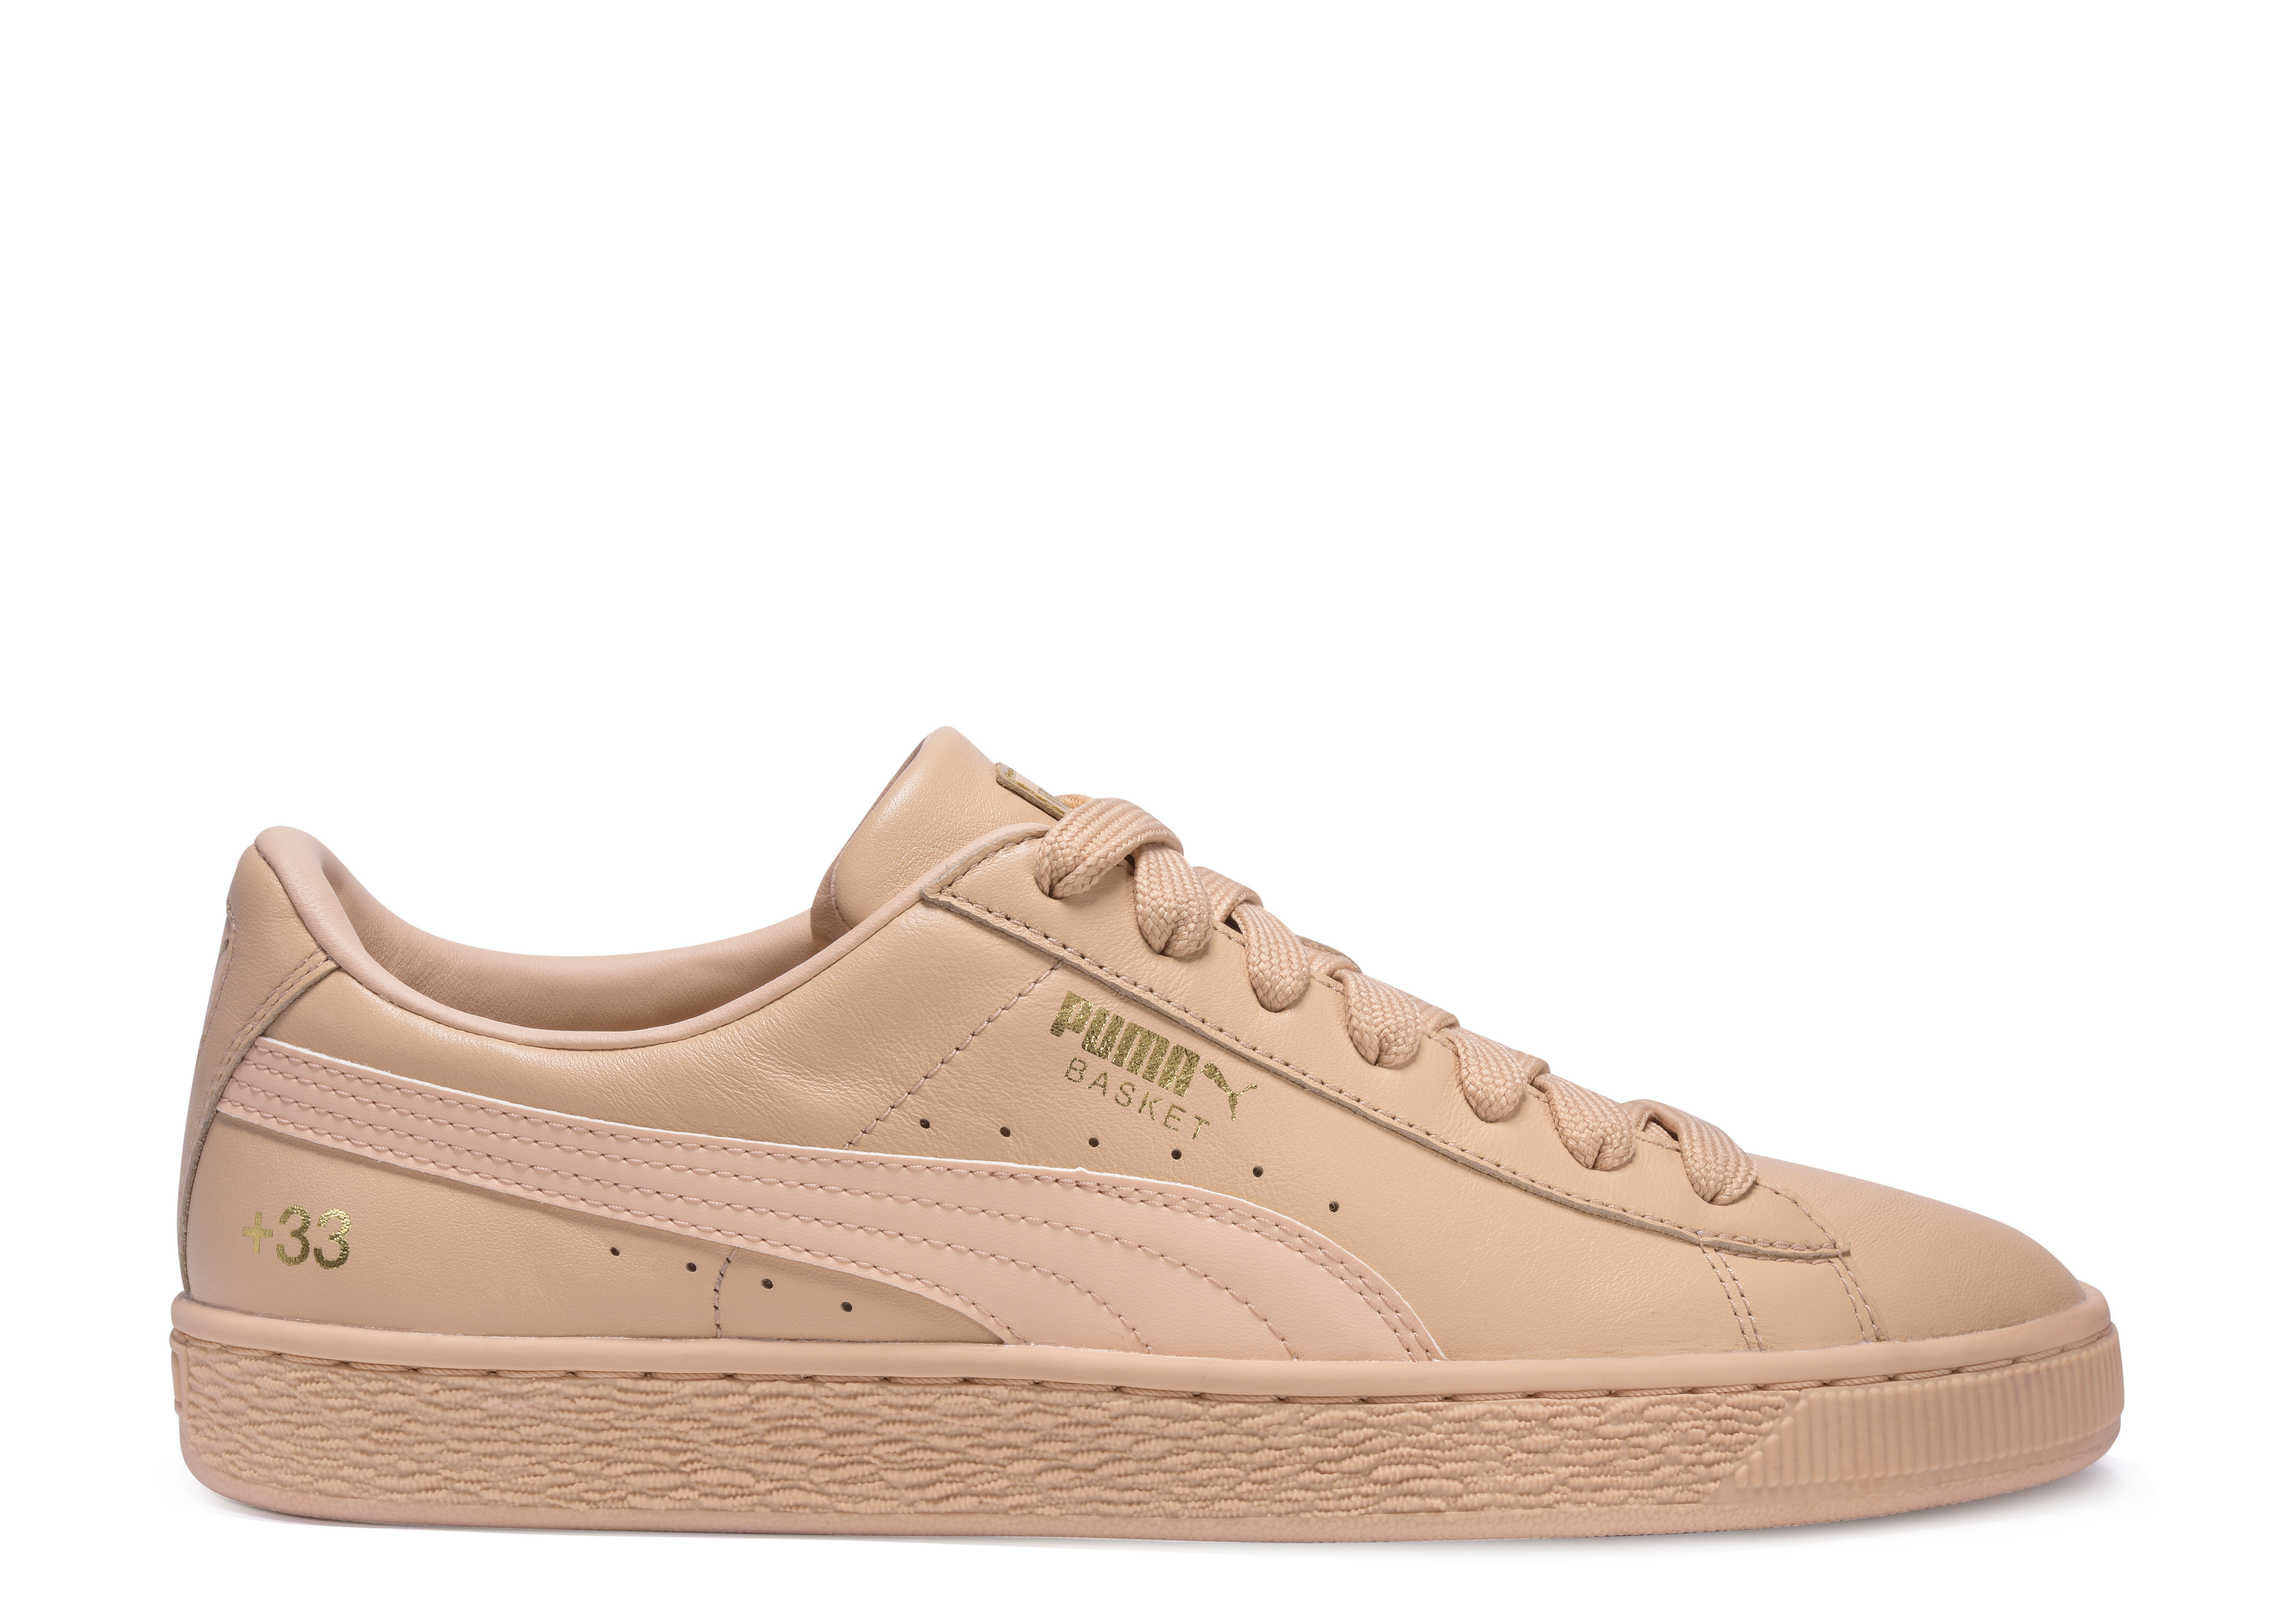 Puma Basket Paris VCHTA